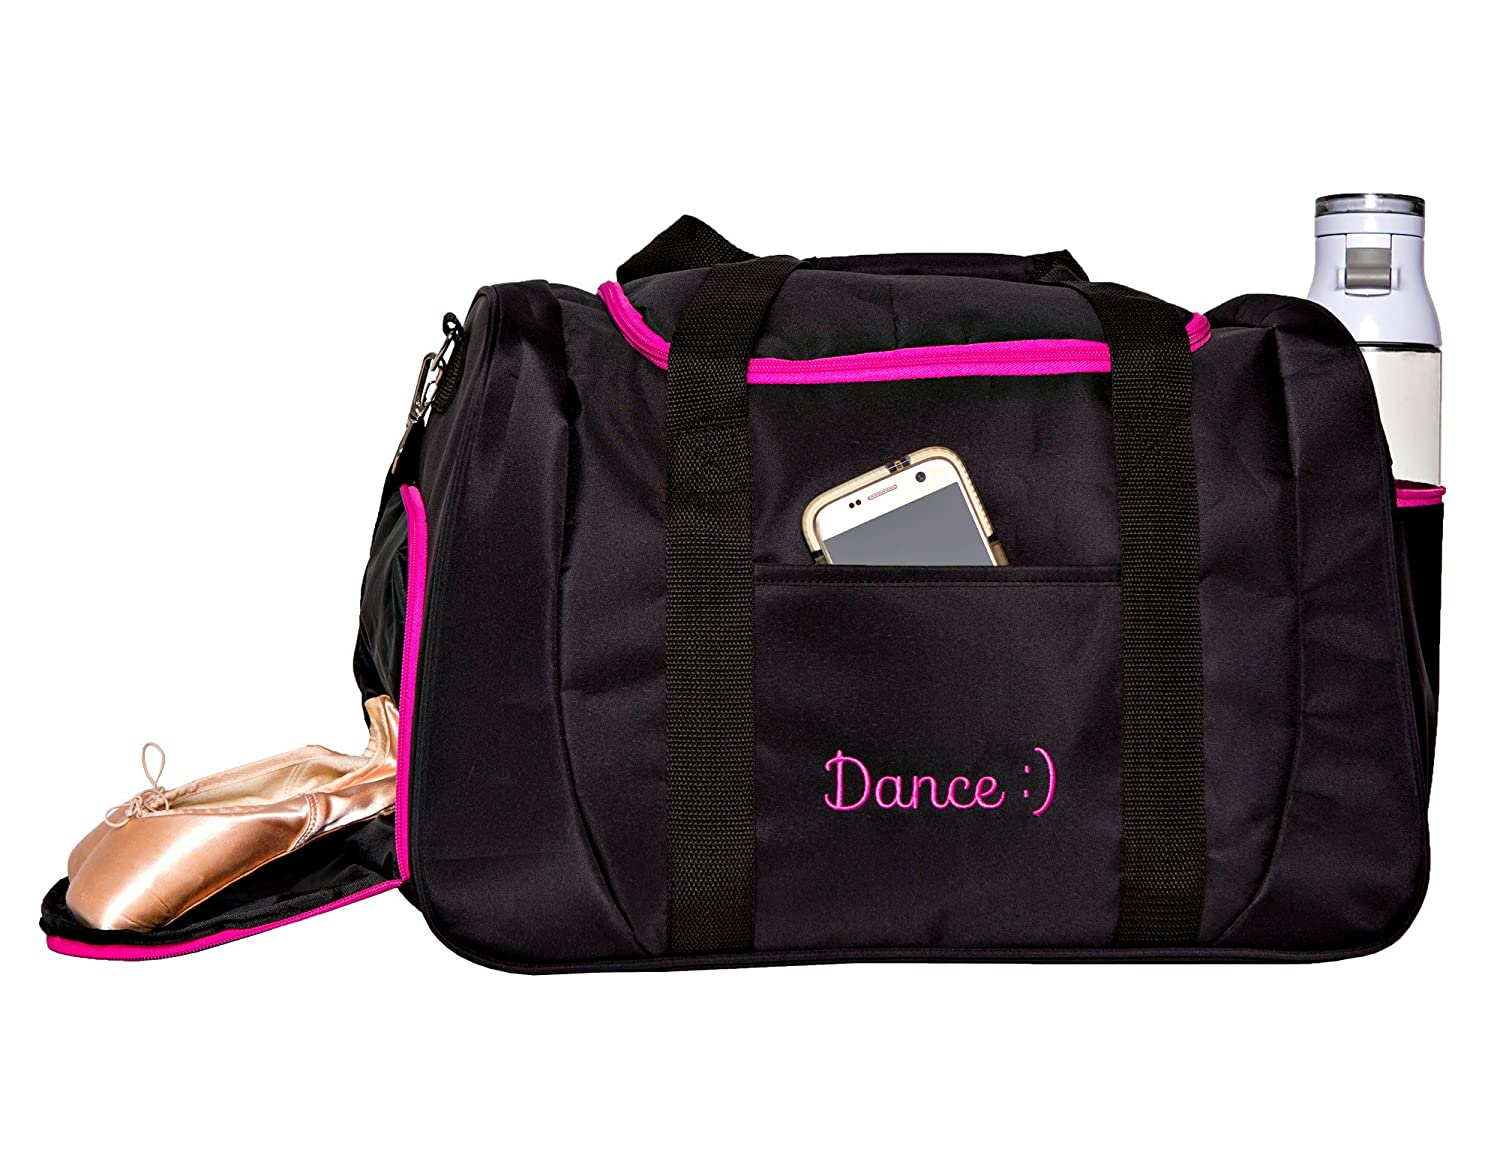 bc265b0149ee Horizon Dance 1064 Smiley Medium-Large Dance Duffel Bag with Shoe  Compartment